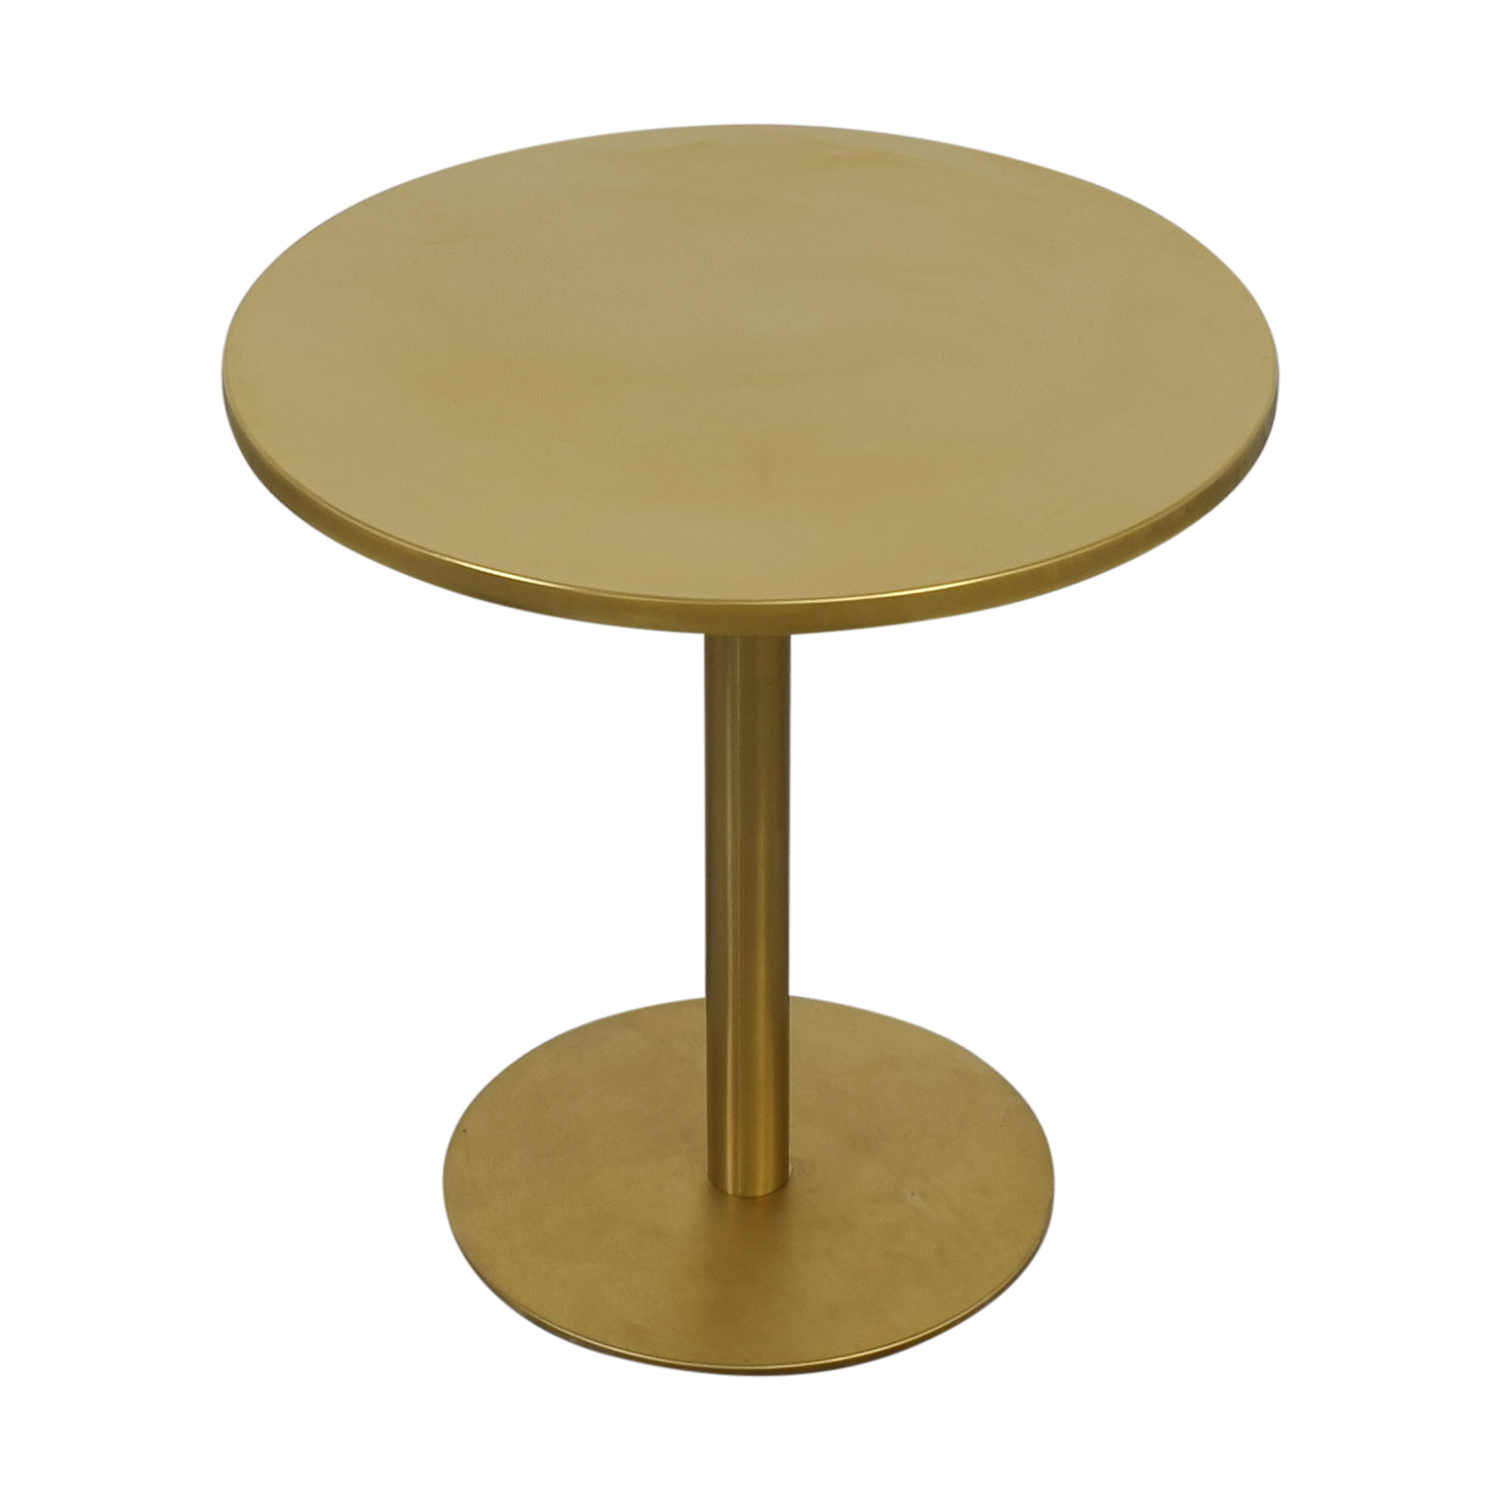 CB2 CB2 Watermark Bistro Dining Table nyc